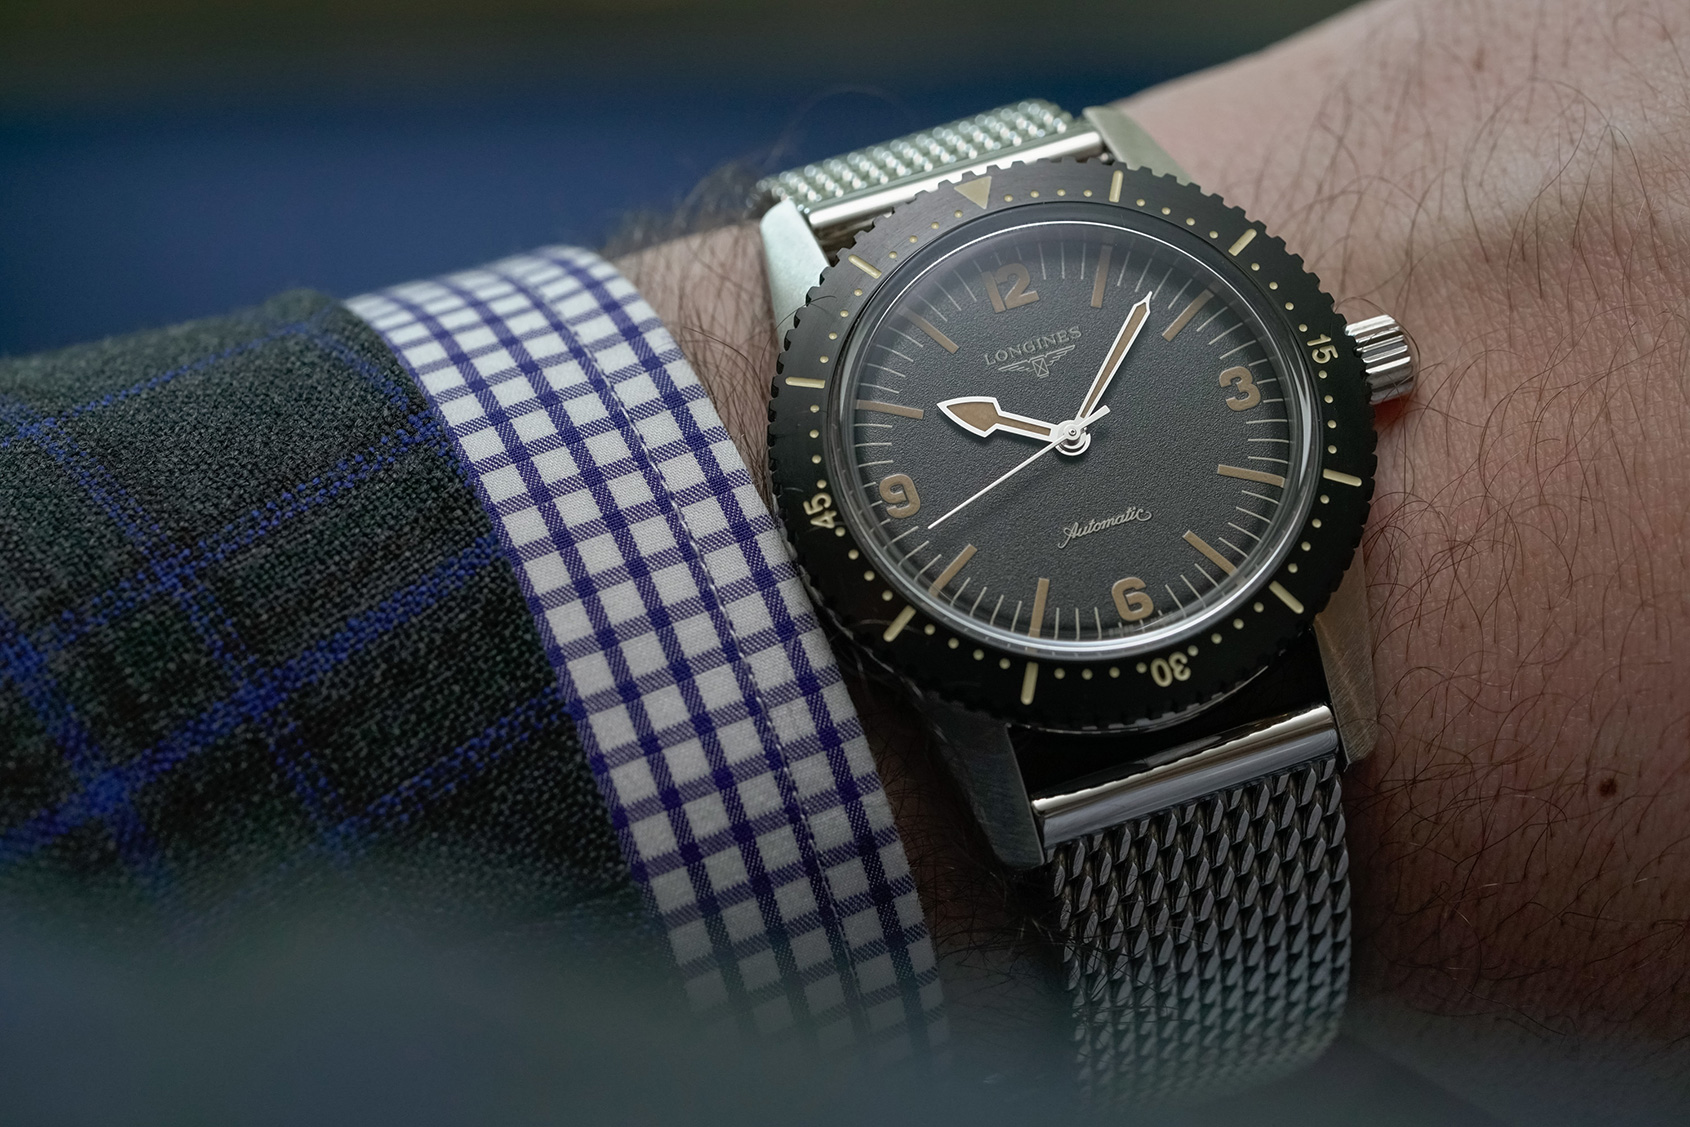 Video The Longines Skin Diver Watch Time And Tide Watches